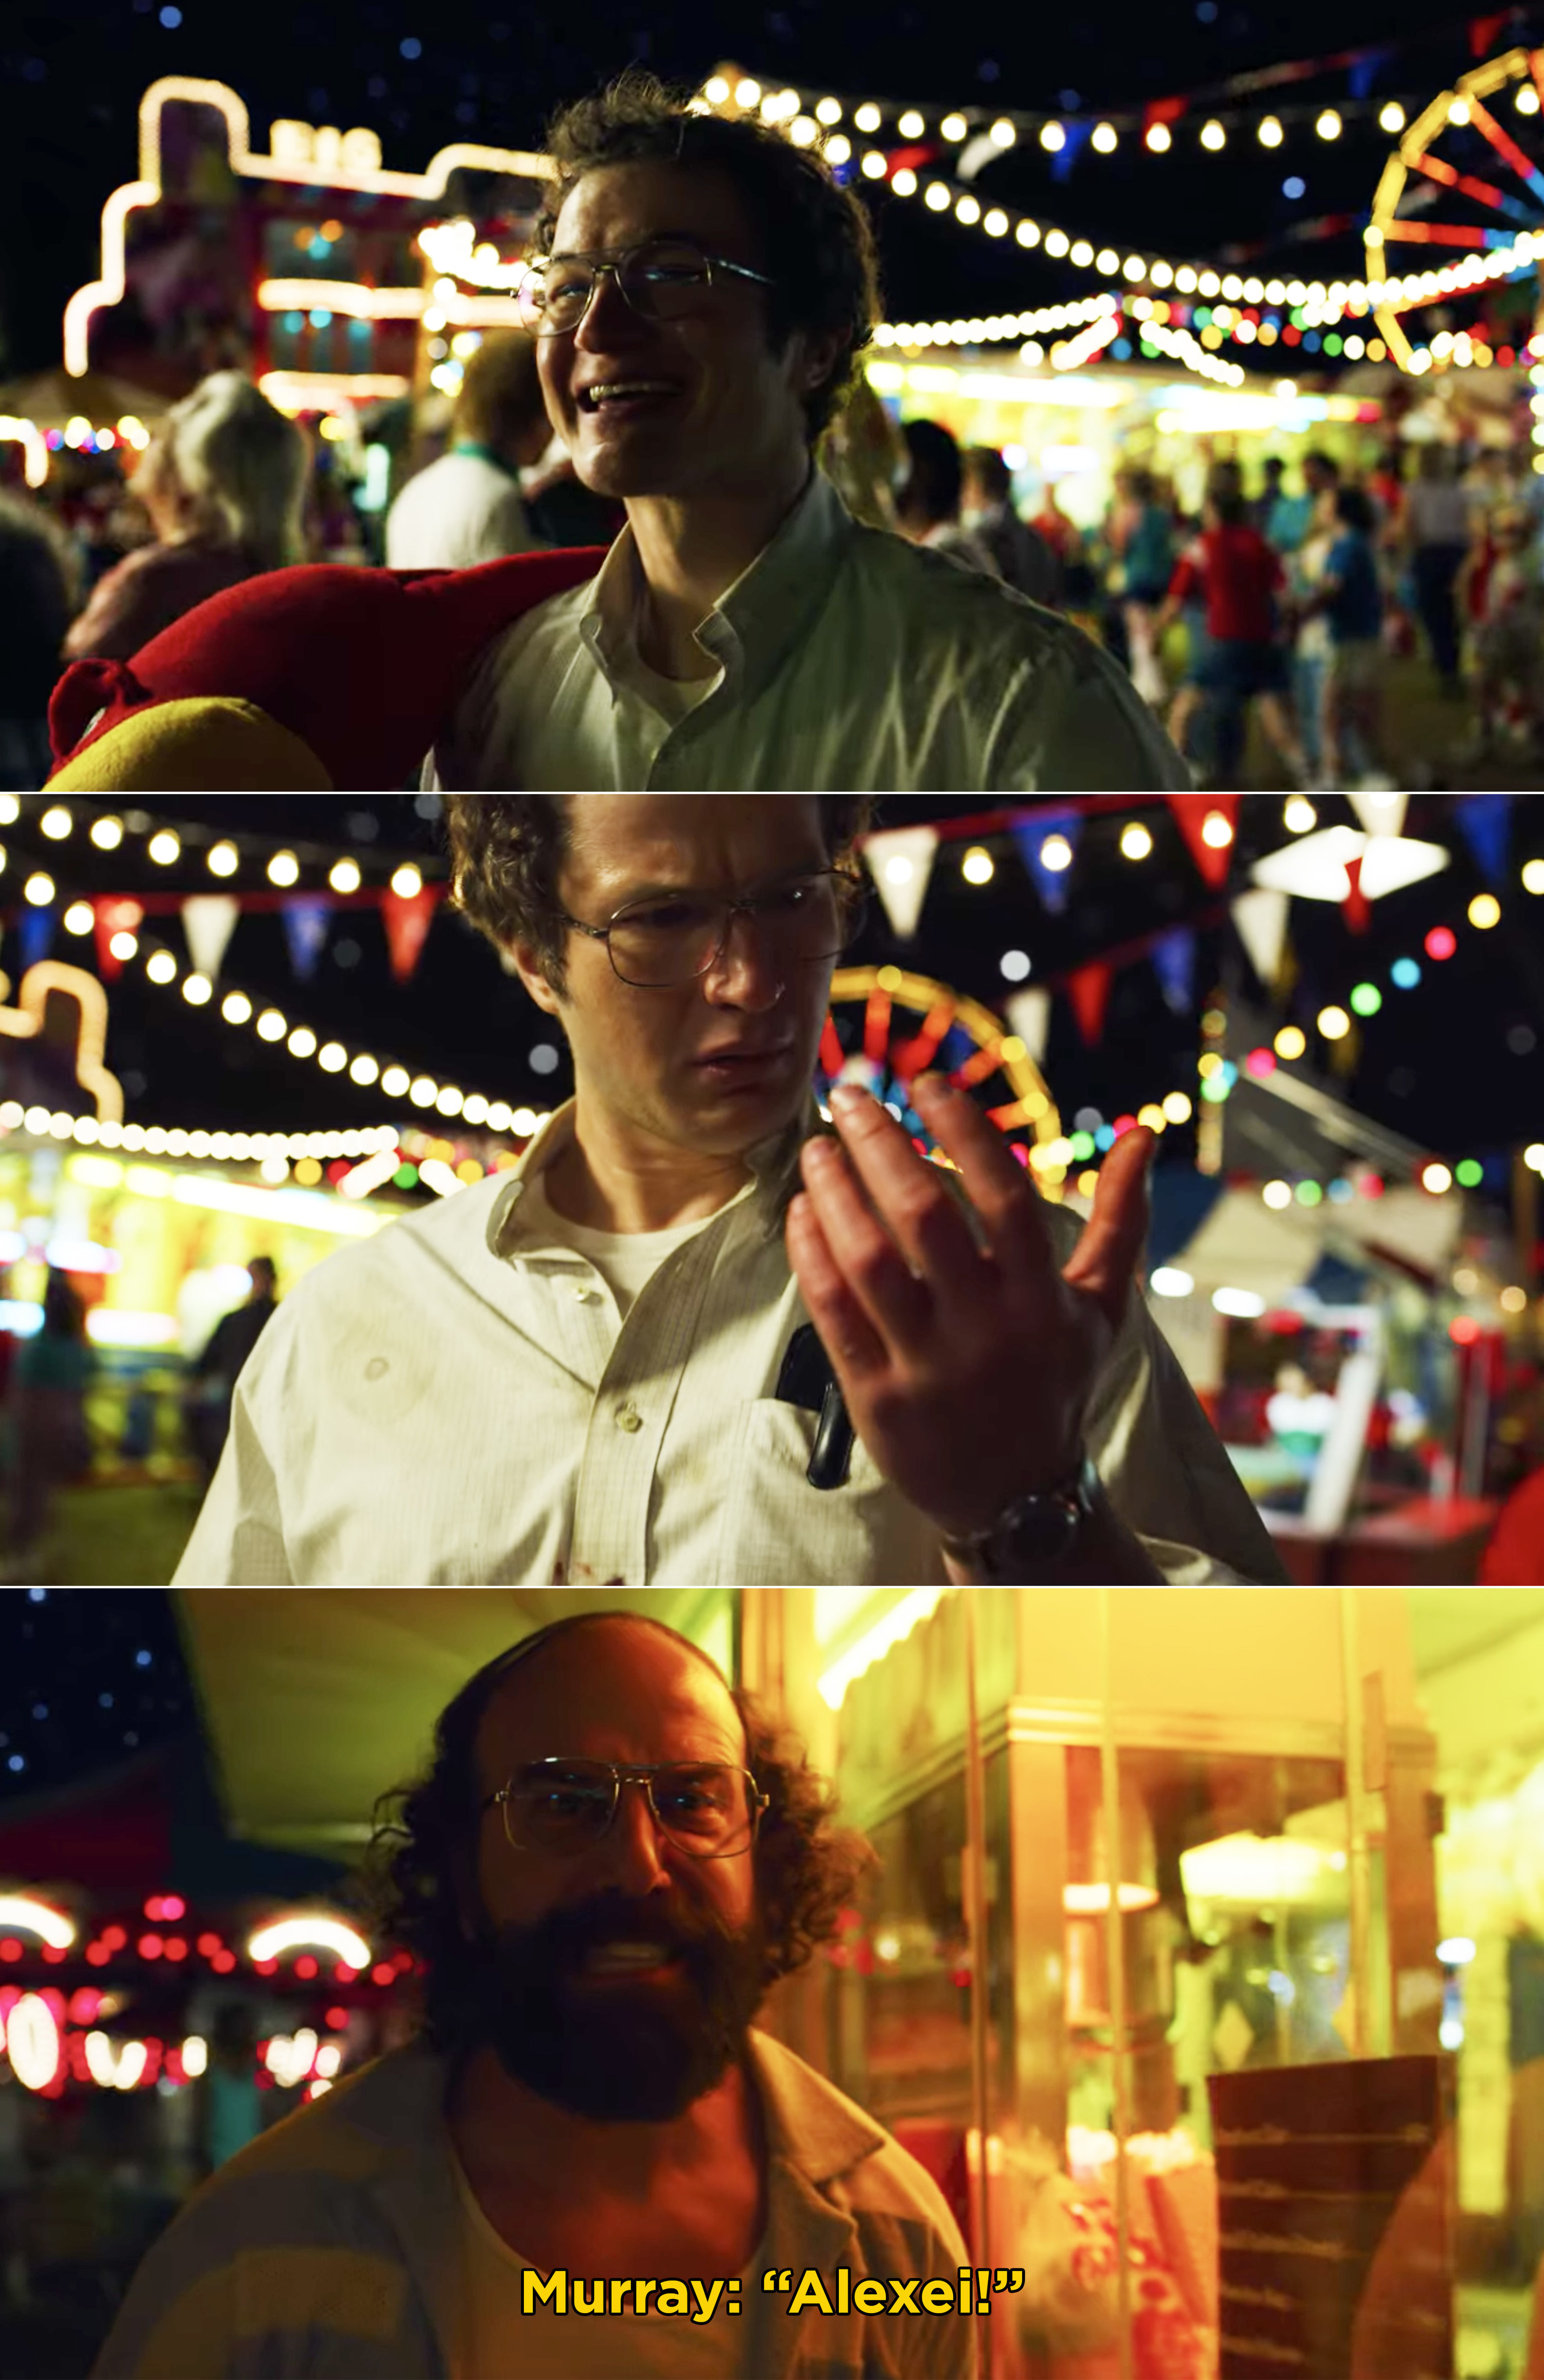 Alexei getting shot at the carnival in front of Murray